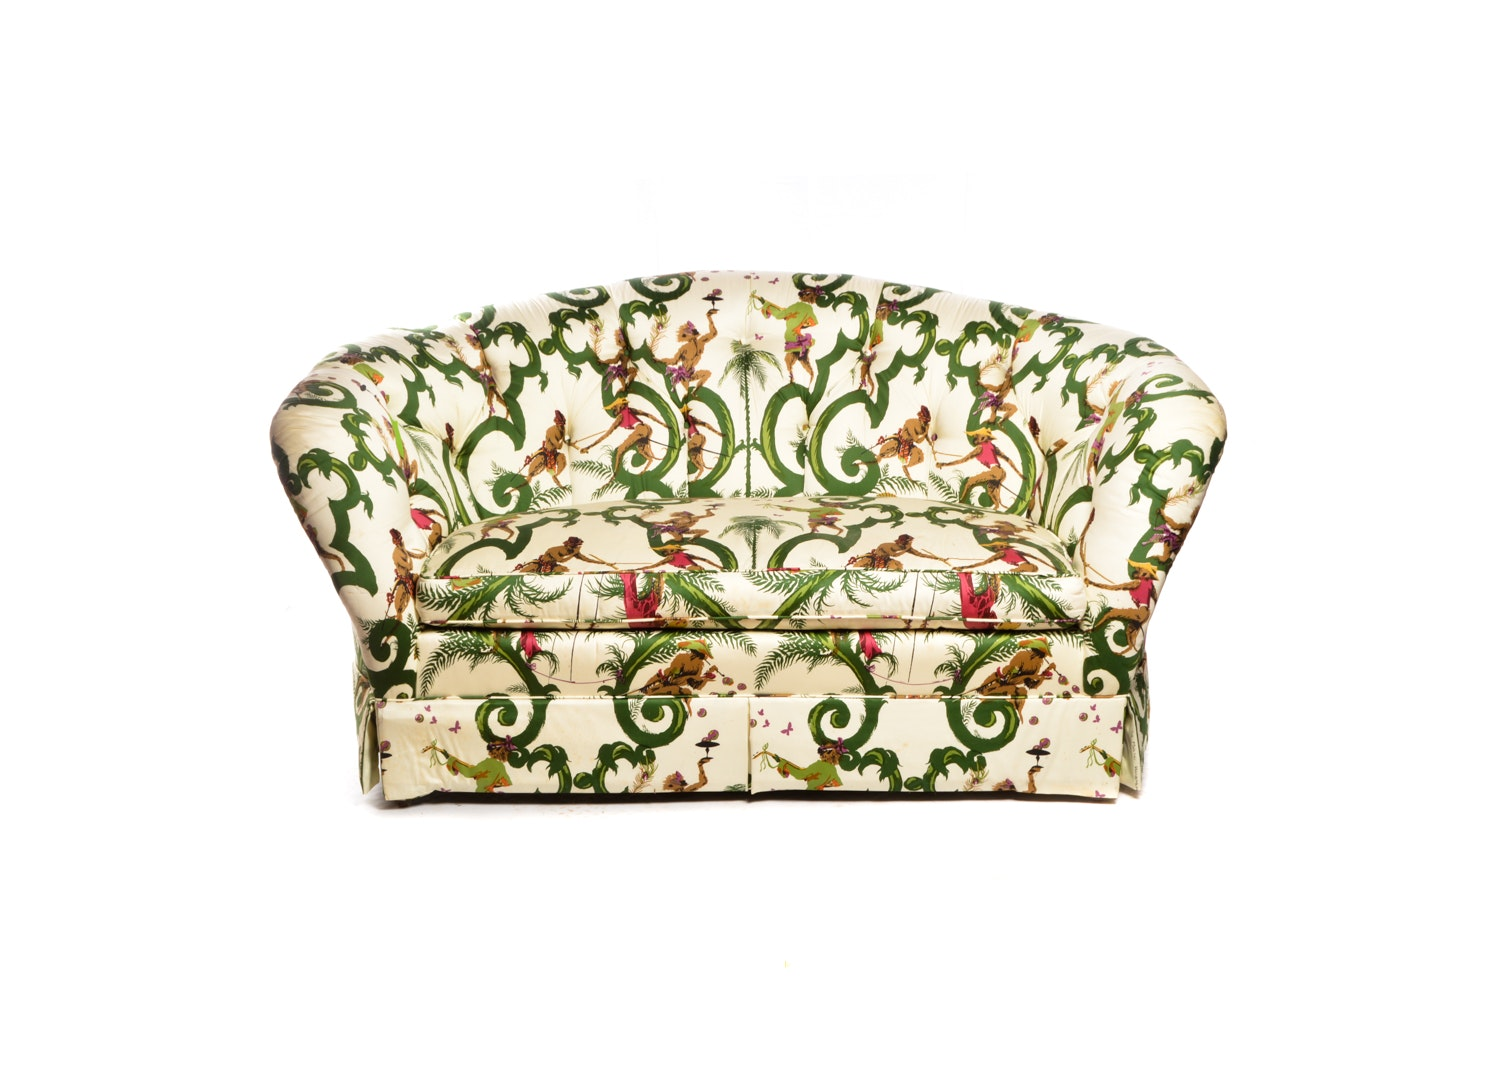 Jungle Print Upholstered Cabriole Loveseat, 20th/21st Century